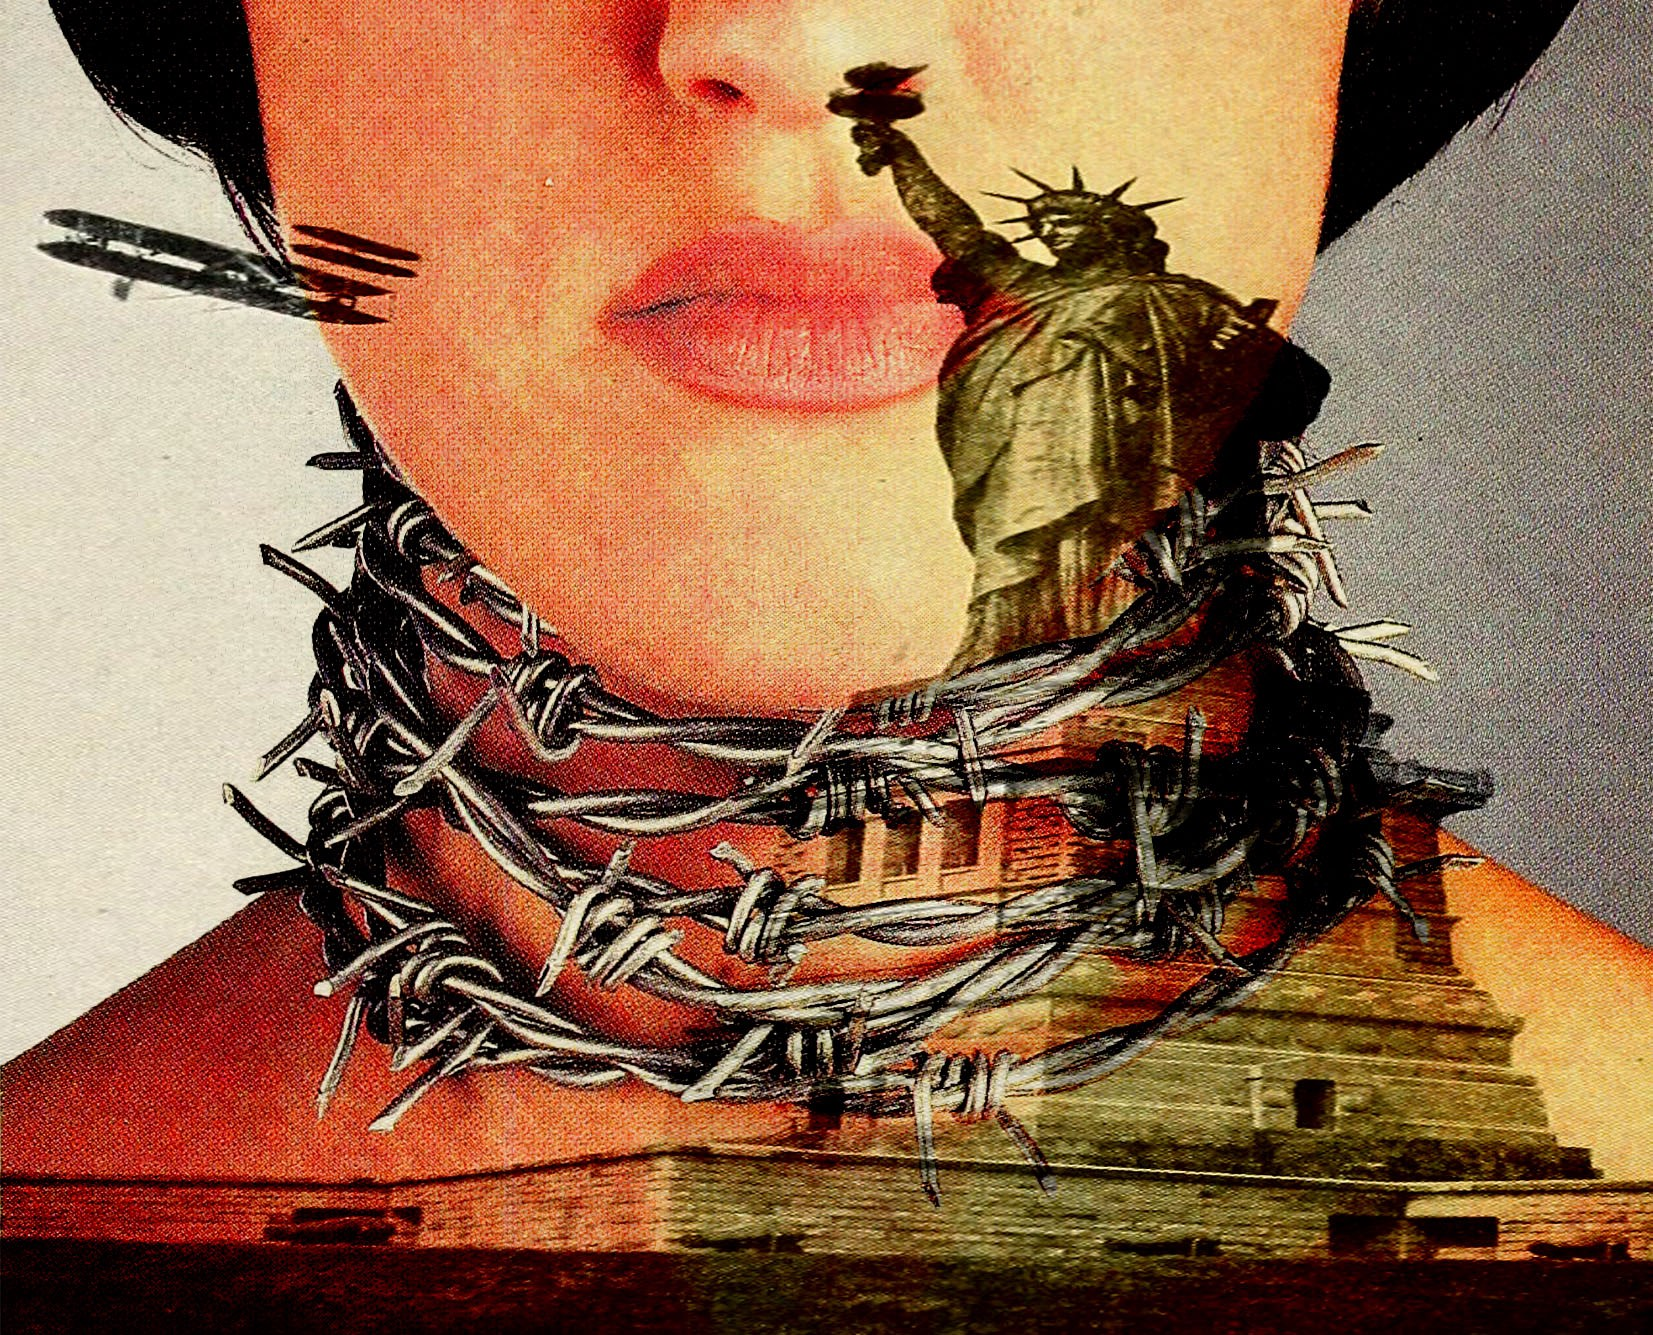 Collage by author: Statue of Liberty, girl in barbed wire necklace.